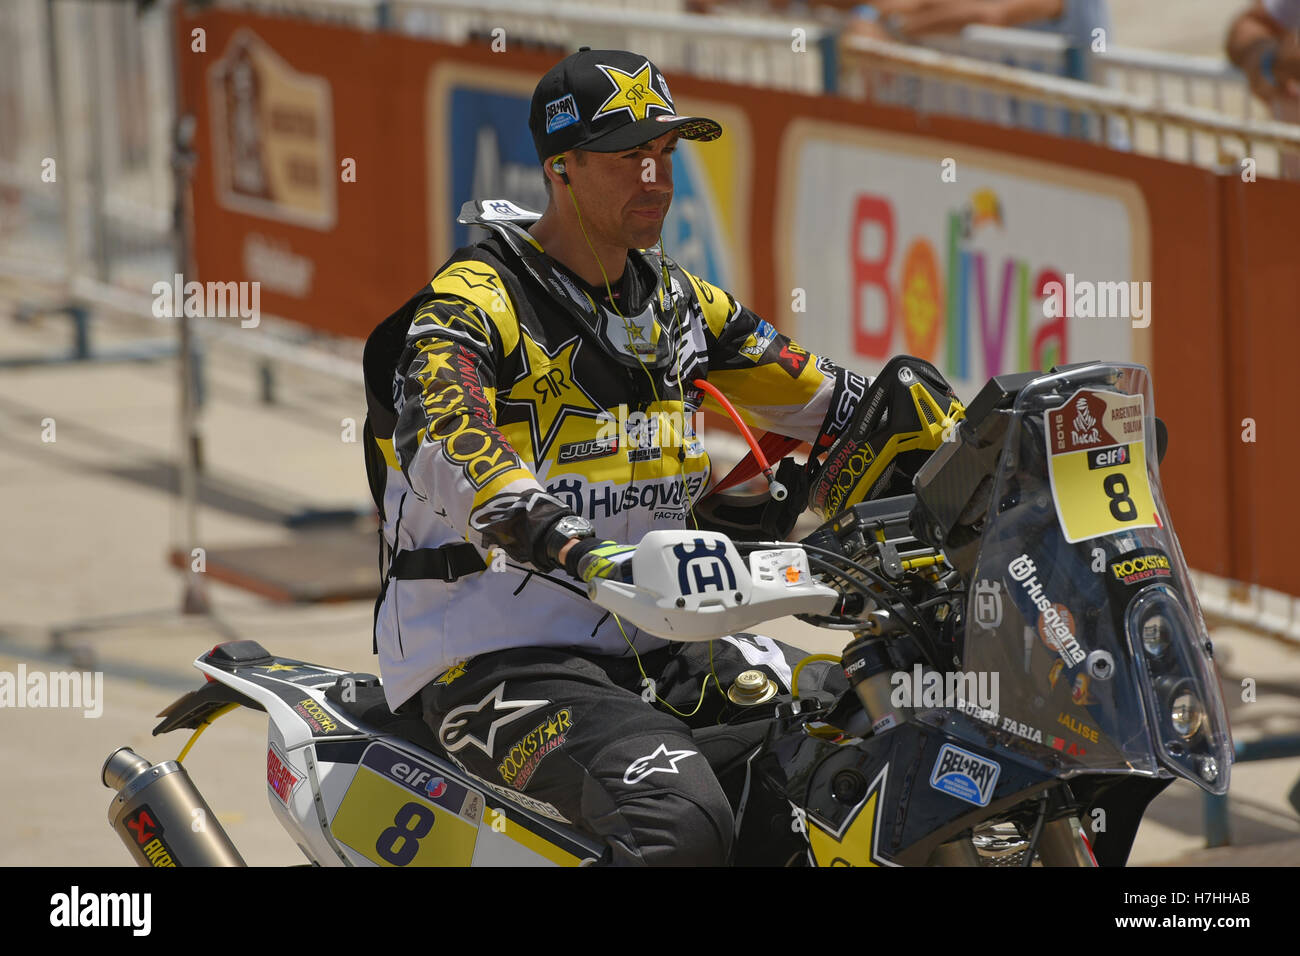 Husqvarna rider Ruben Faria (Portugal) during the symbolic start of the Dakar Rally 2016 in Buenos Aires, Argentina, Stock Photo